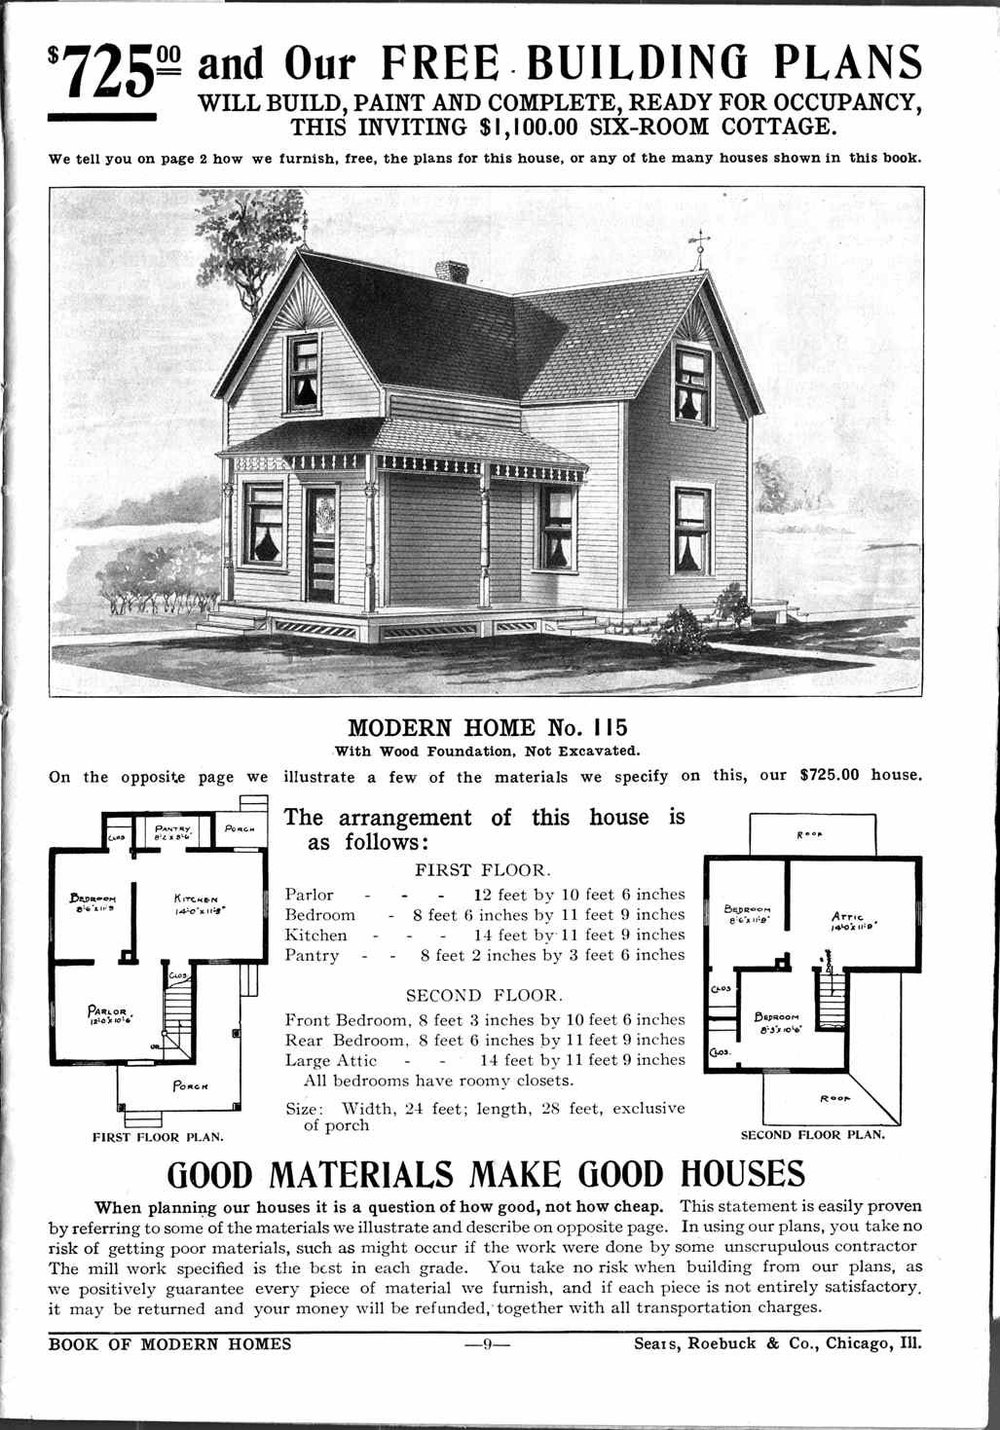 Sears flat-pack home ad, via Boing Boing.